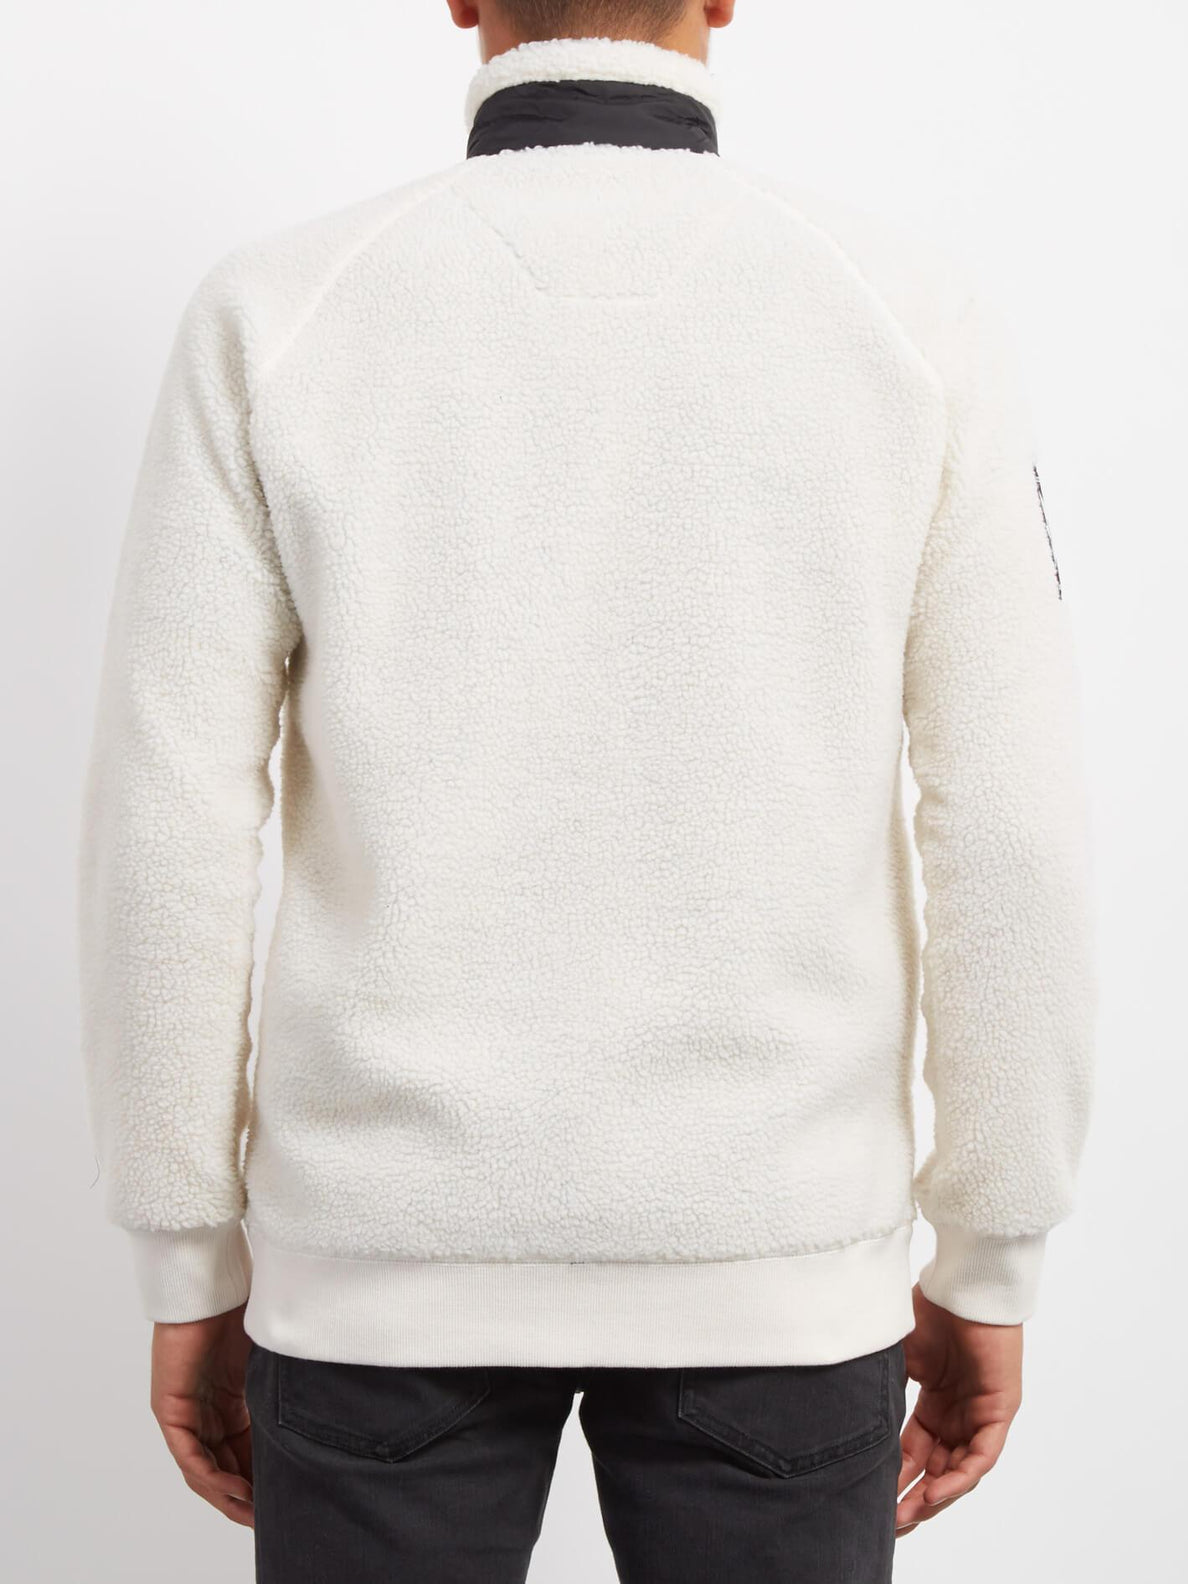 A.P. Mock Sweaters - White